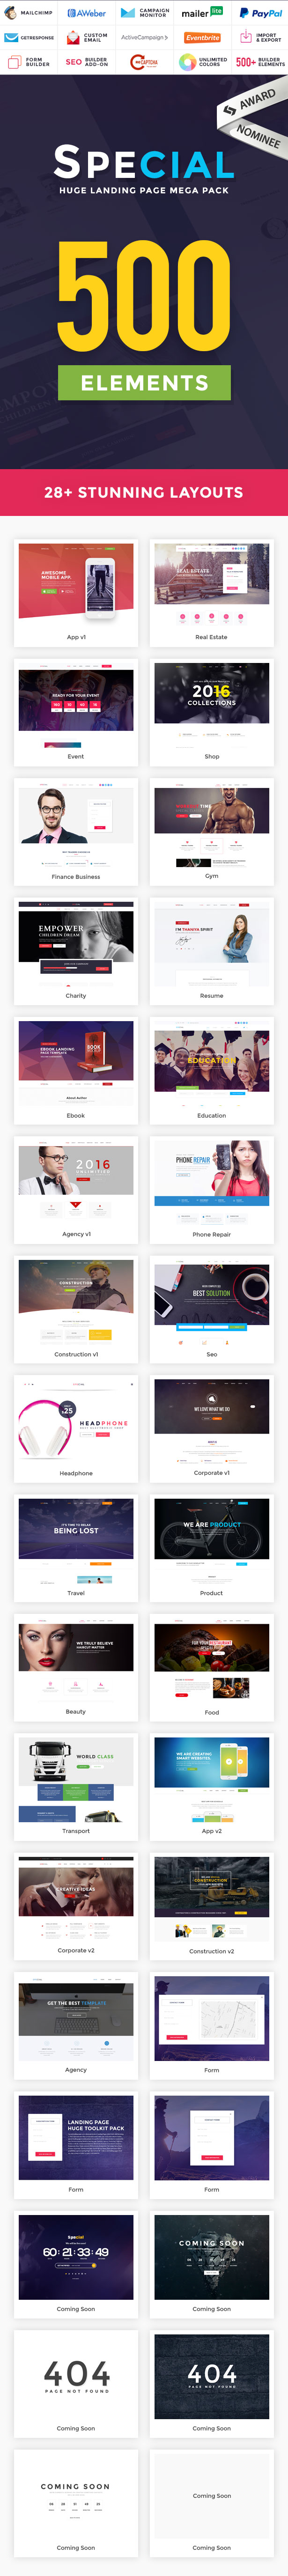 Special - Landing Page HTML Pack - 1